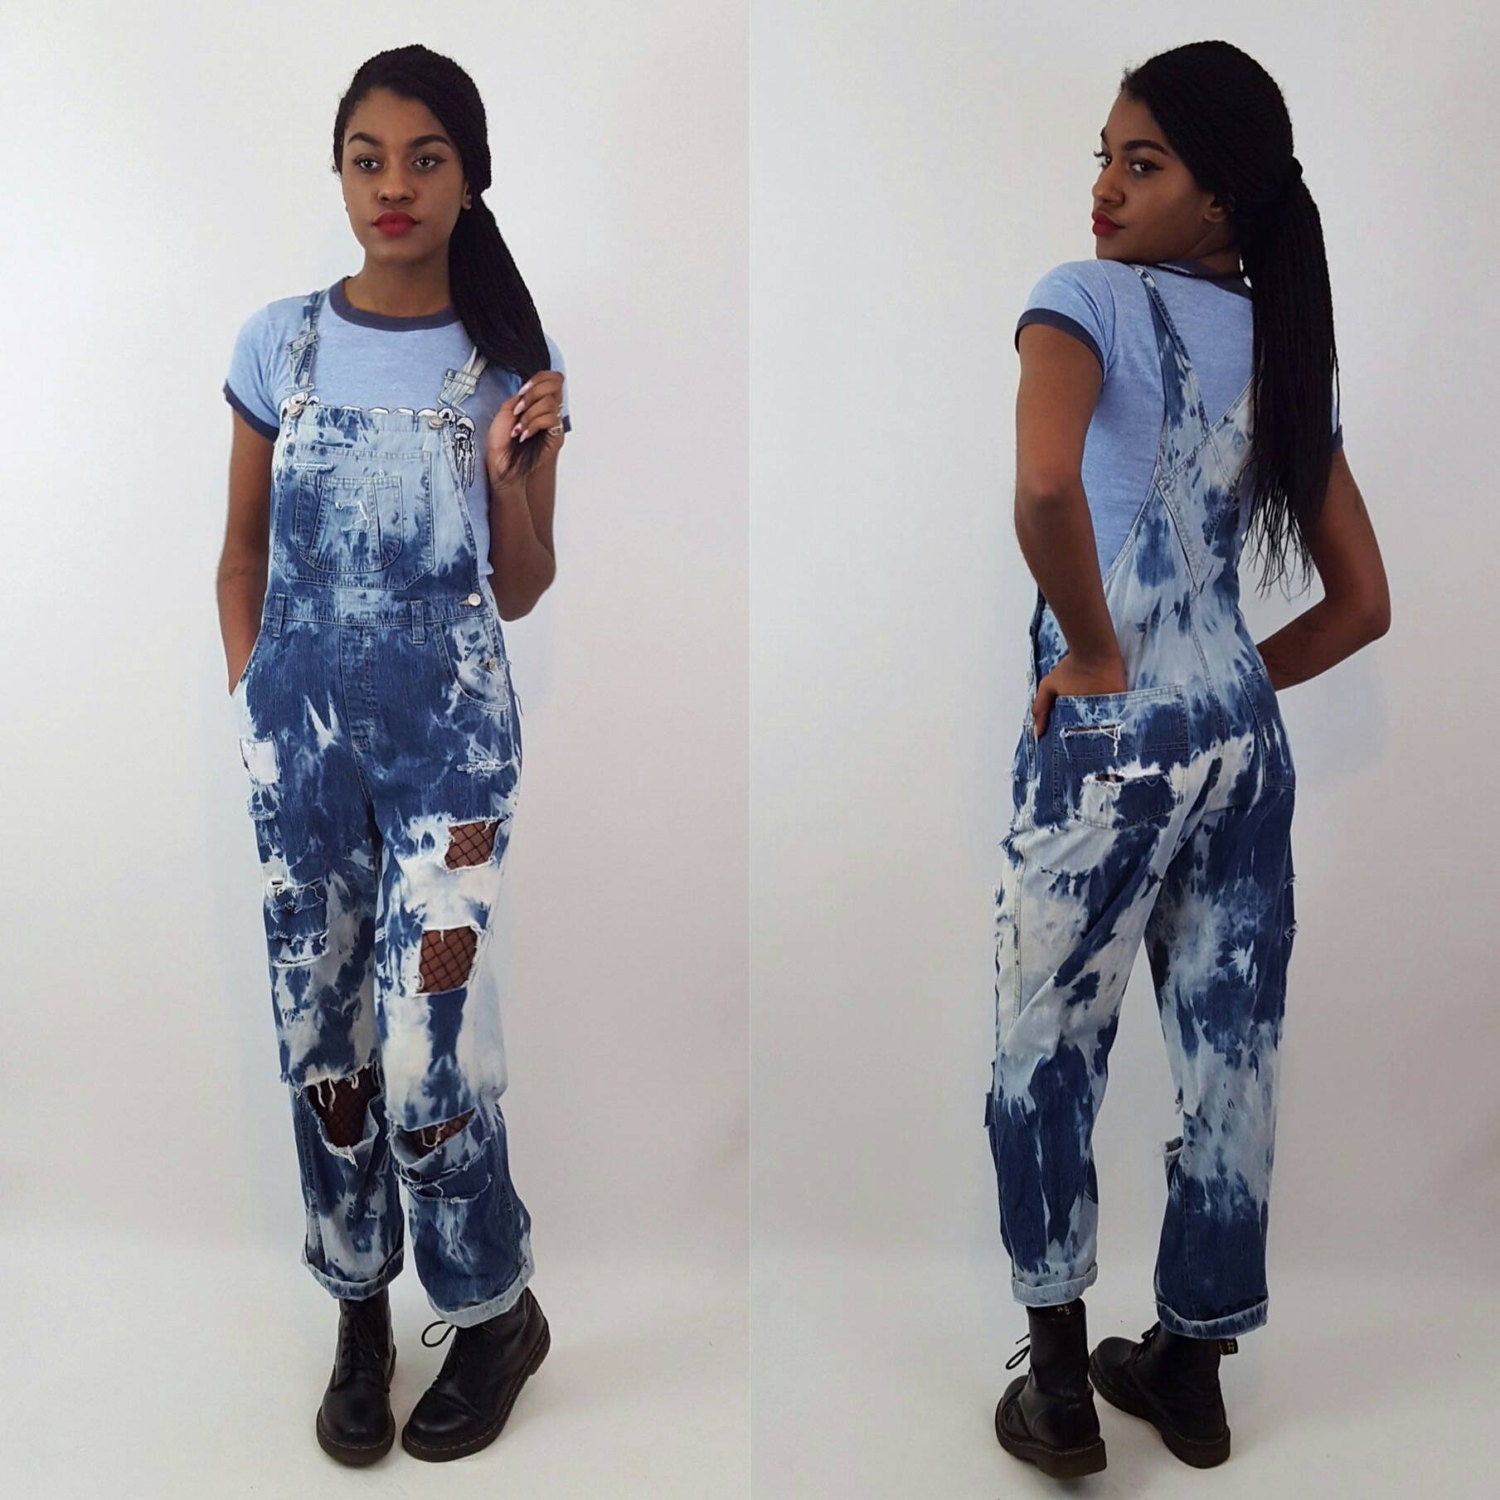 143505ec972 Remade 90 s Vintage Shredded Tie Dye Overalls - Small Hand ...